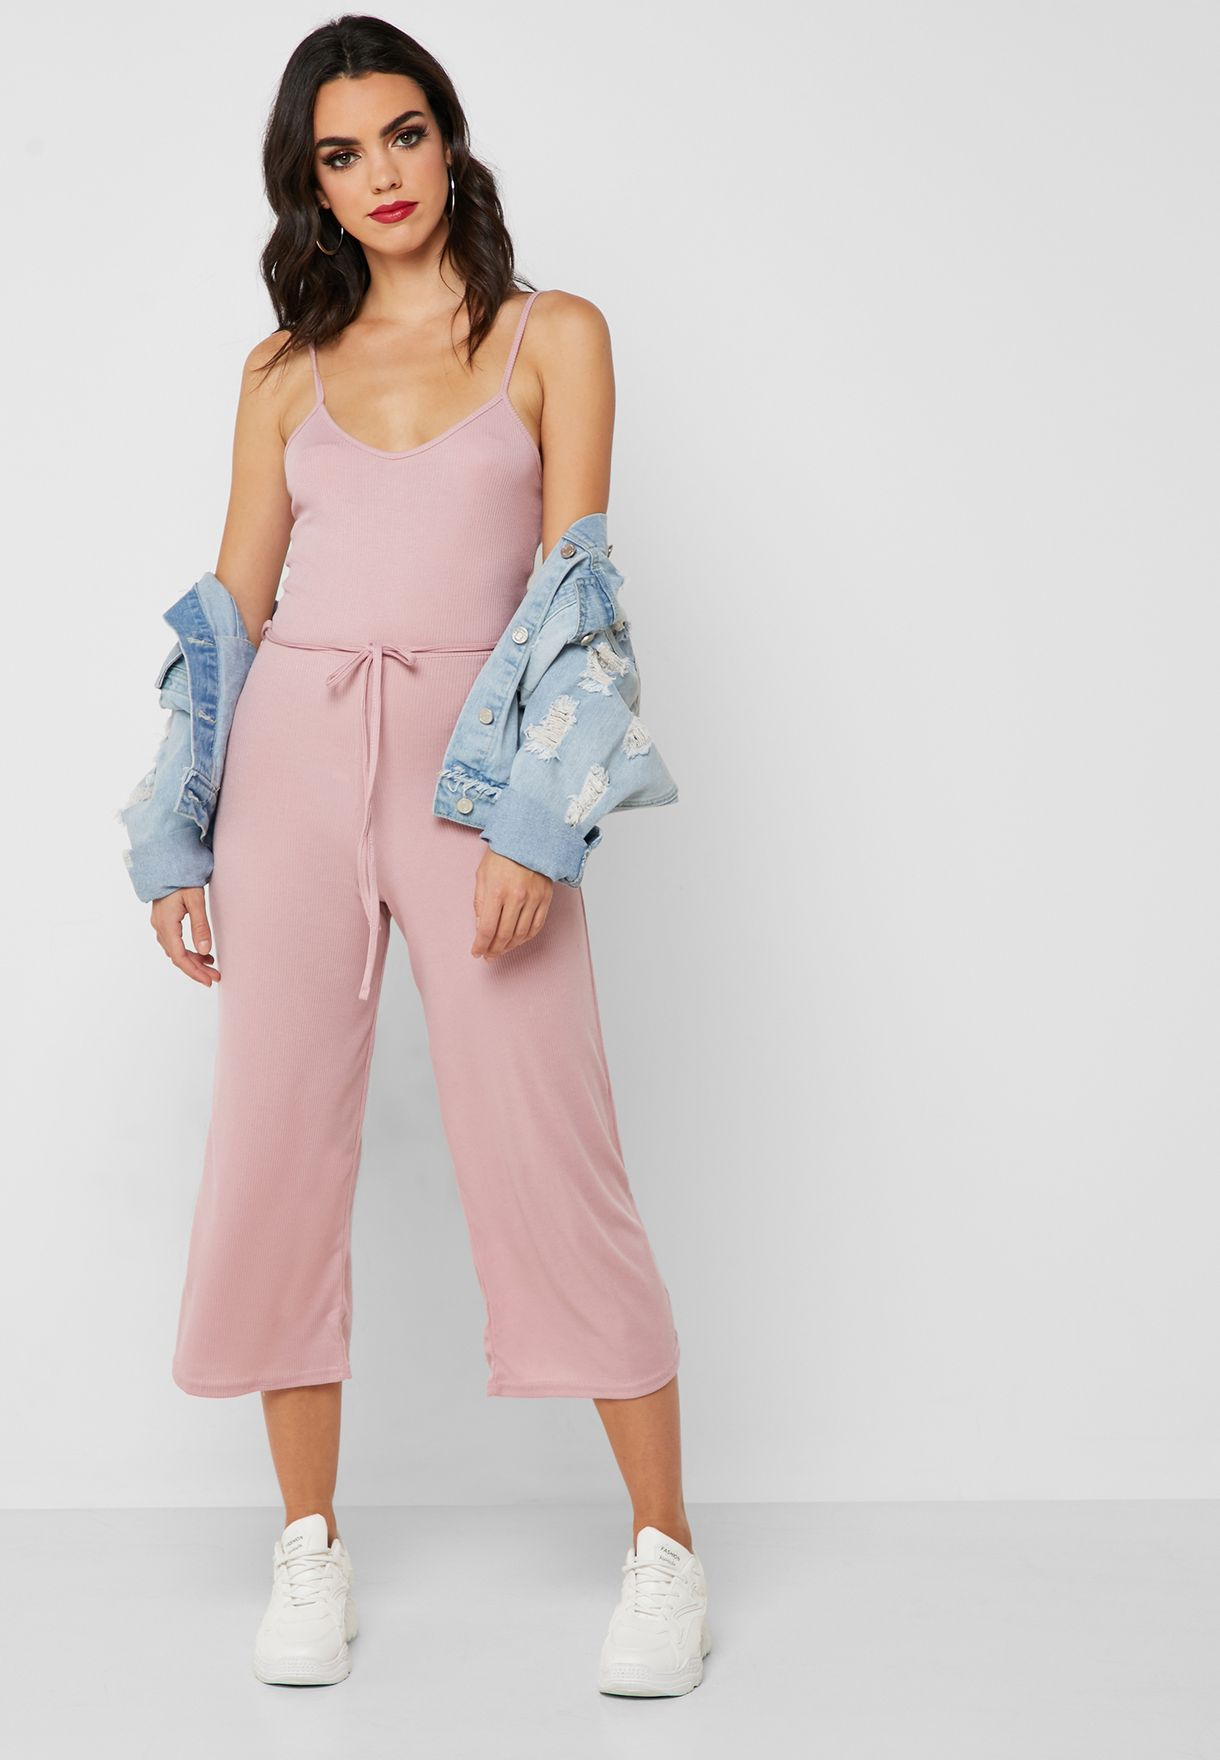 941bee154263 Shop Missguided pink Tie Waist Culottes Jumpsuit M9903961 for Women ...